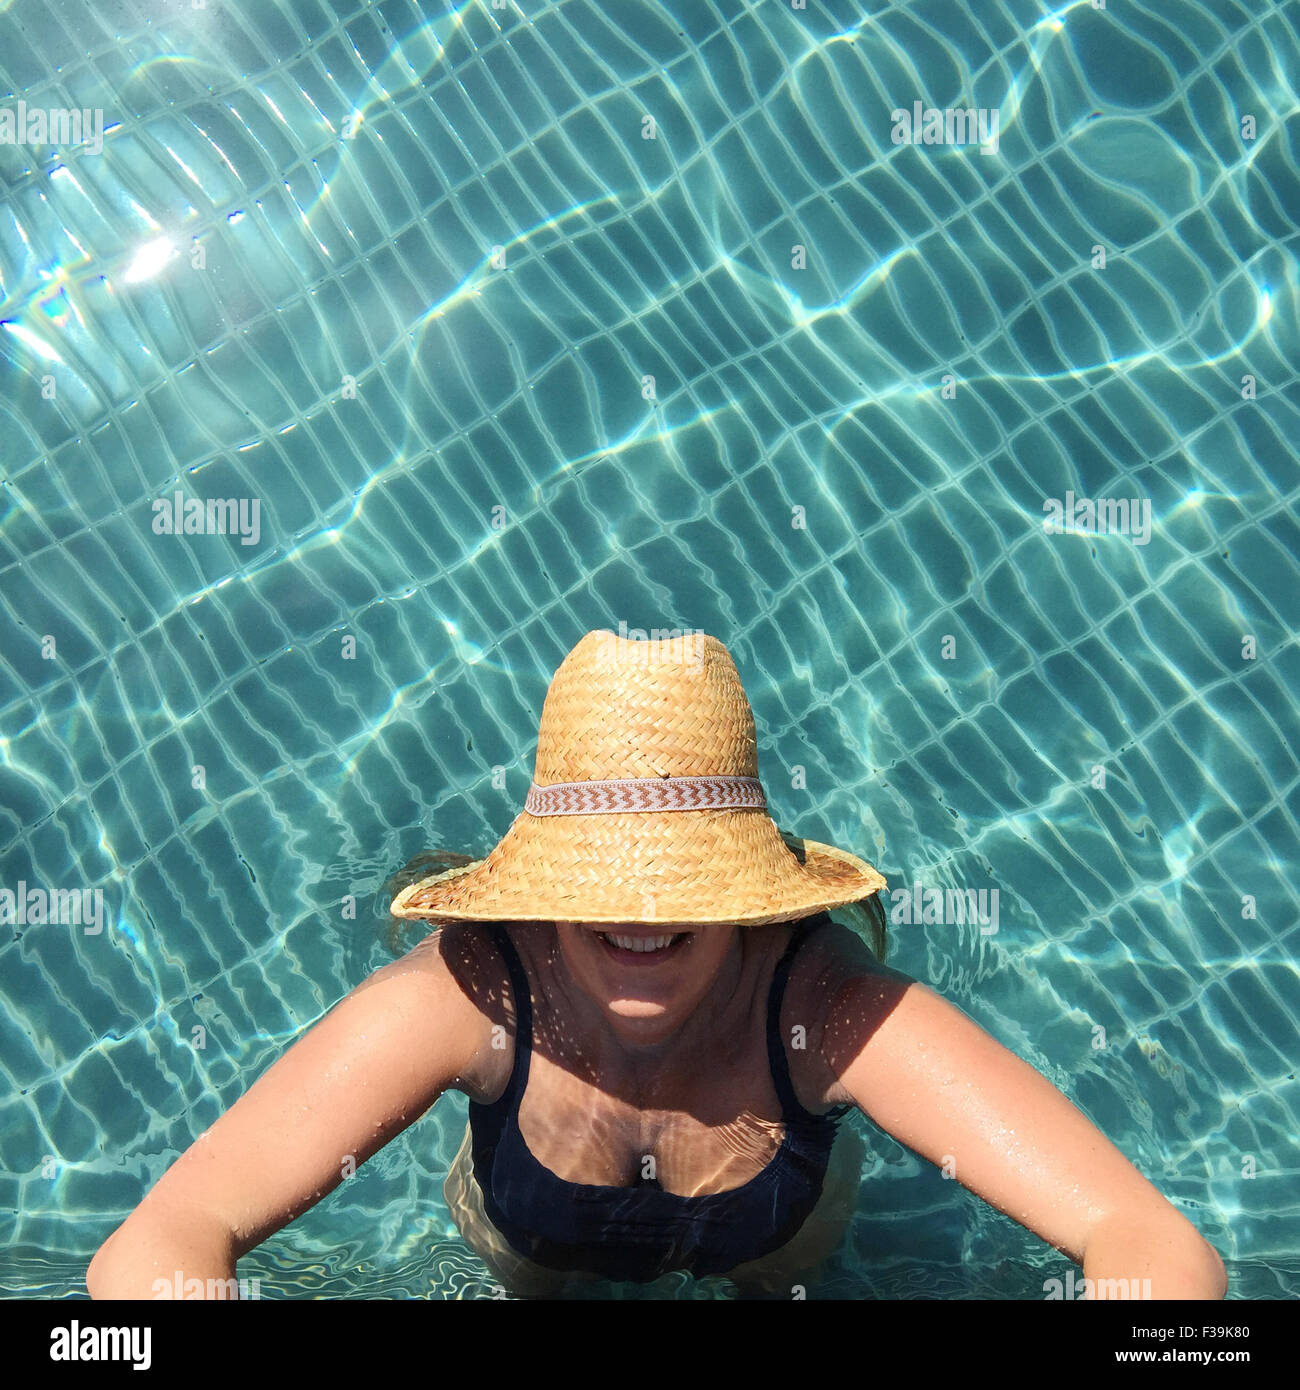 Woman standing in swimming pool looking up Photo Stock